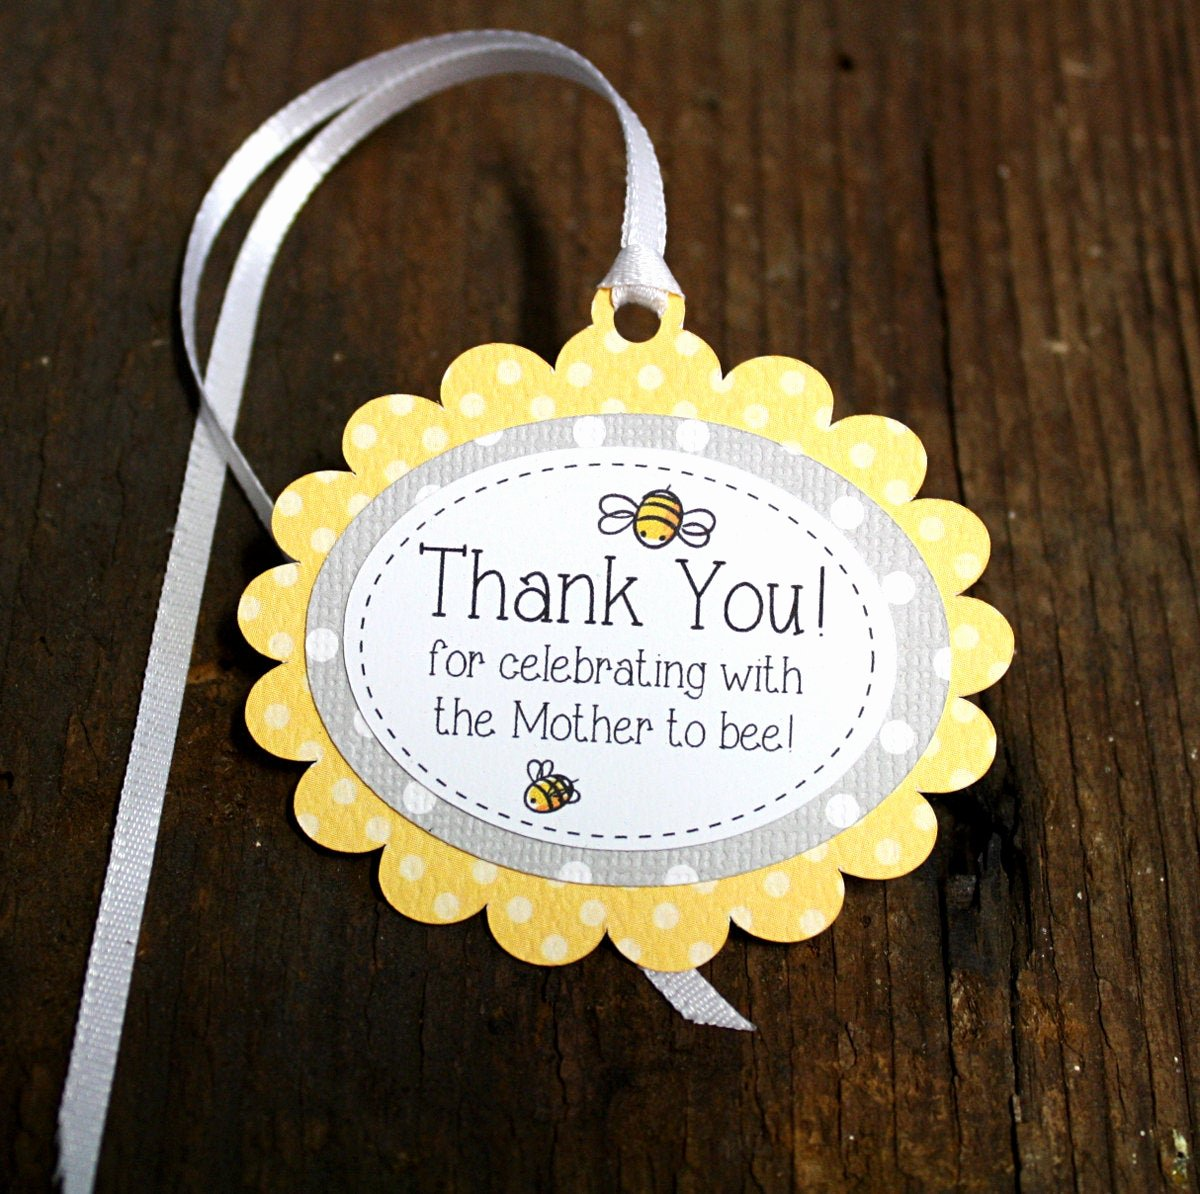 Baby Shower Gift Tags Luxury Bumble Bee themed Baby Shower Tag Personalized Gift Tags or